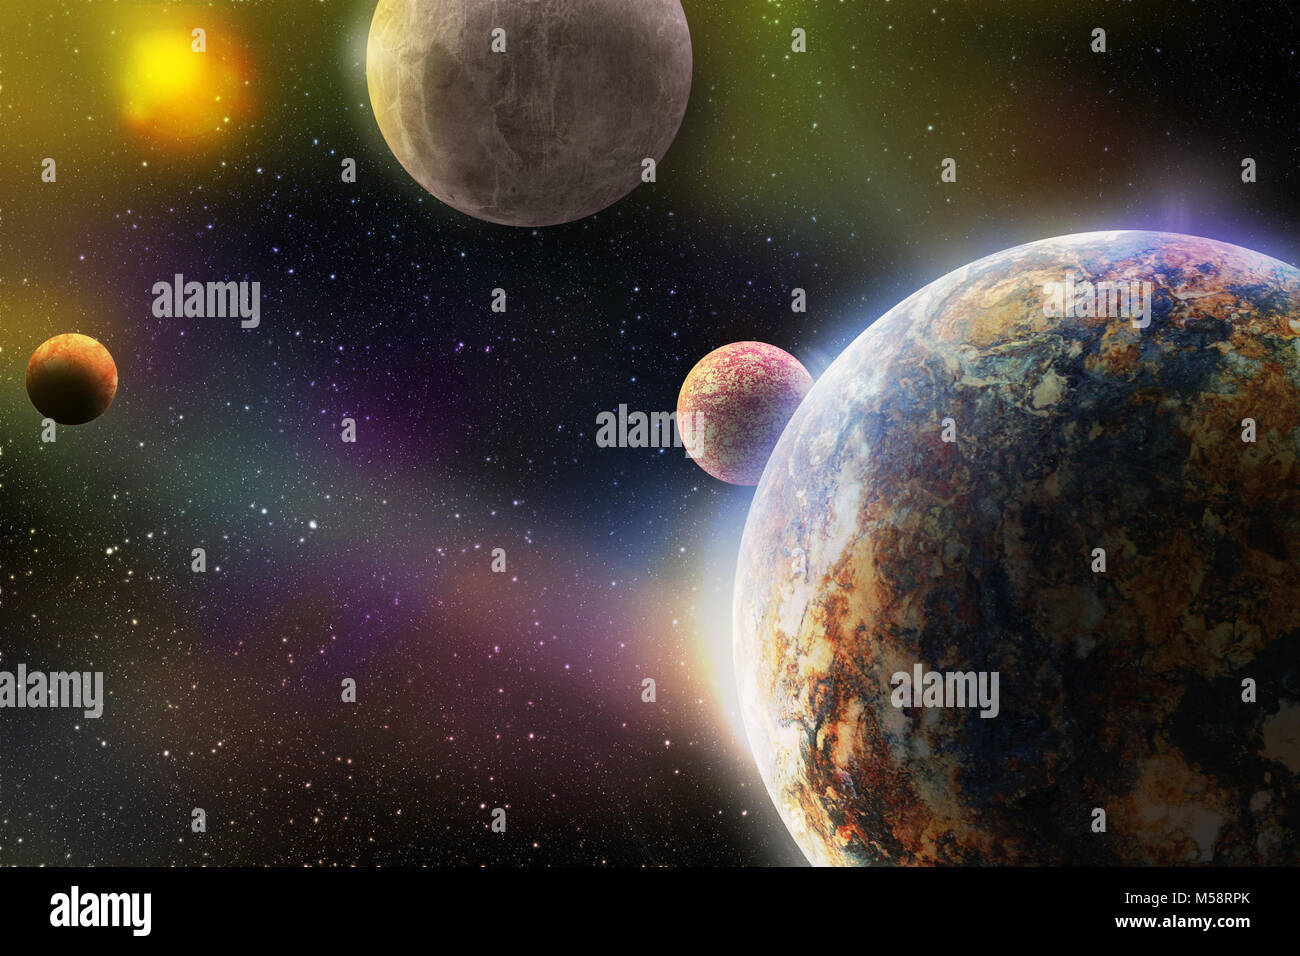 deep outer space with planets in galaxy system with solar sun and stars in 3d illustration, fantasy or science fiction - Stock Image